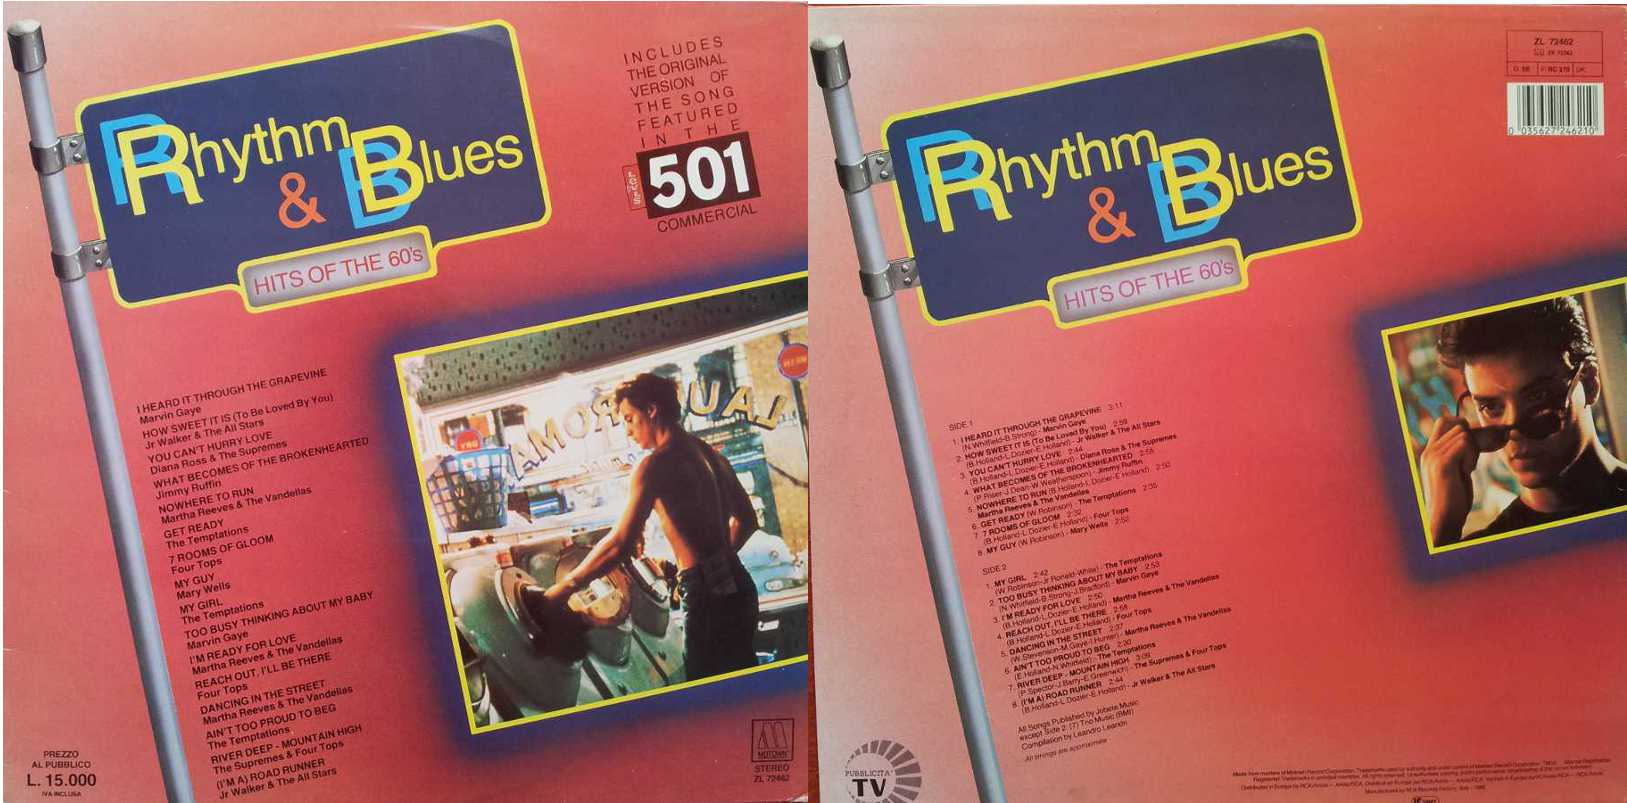 RHYTHM & BLUES - Hits of the 60s (LP/Vinile 33 giri) USATO BUONO